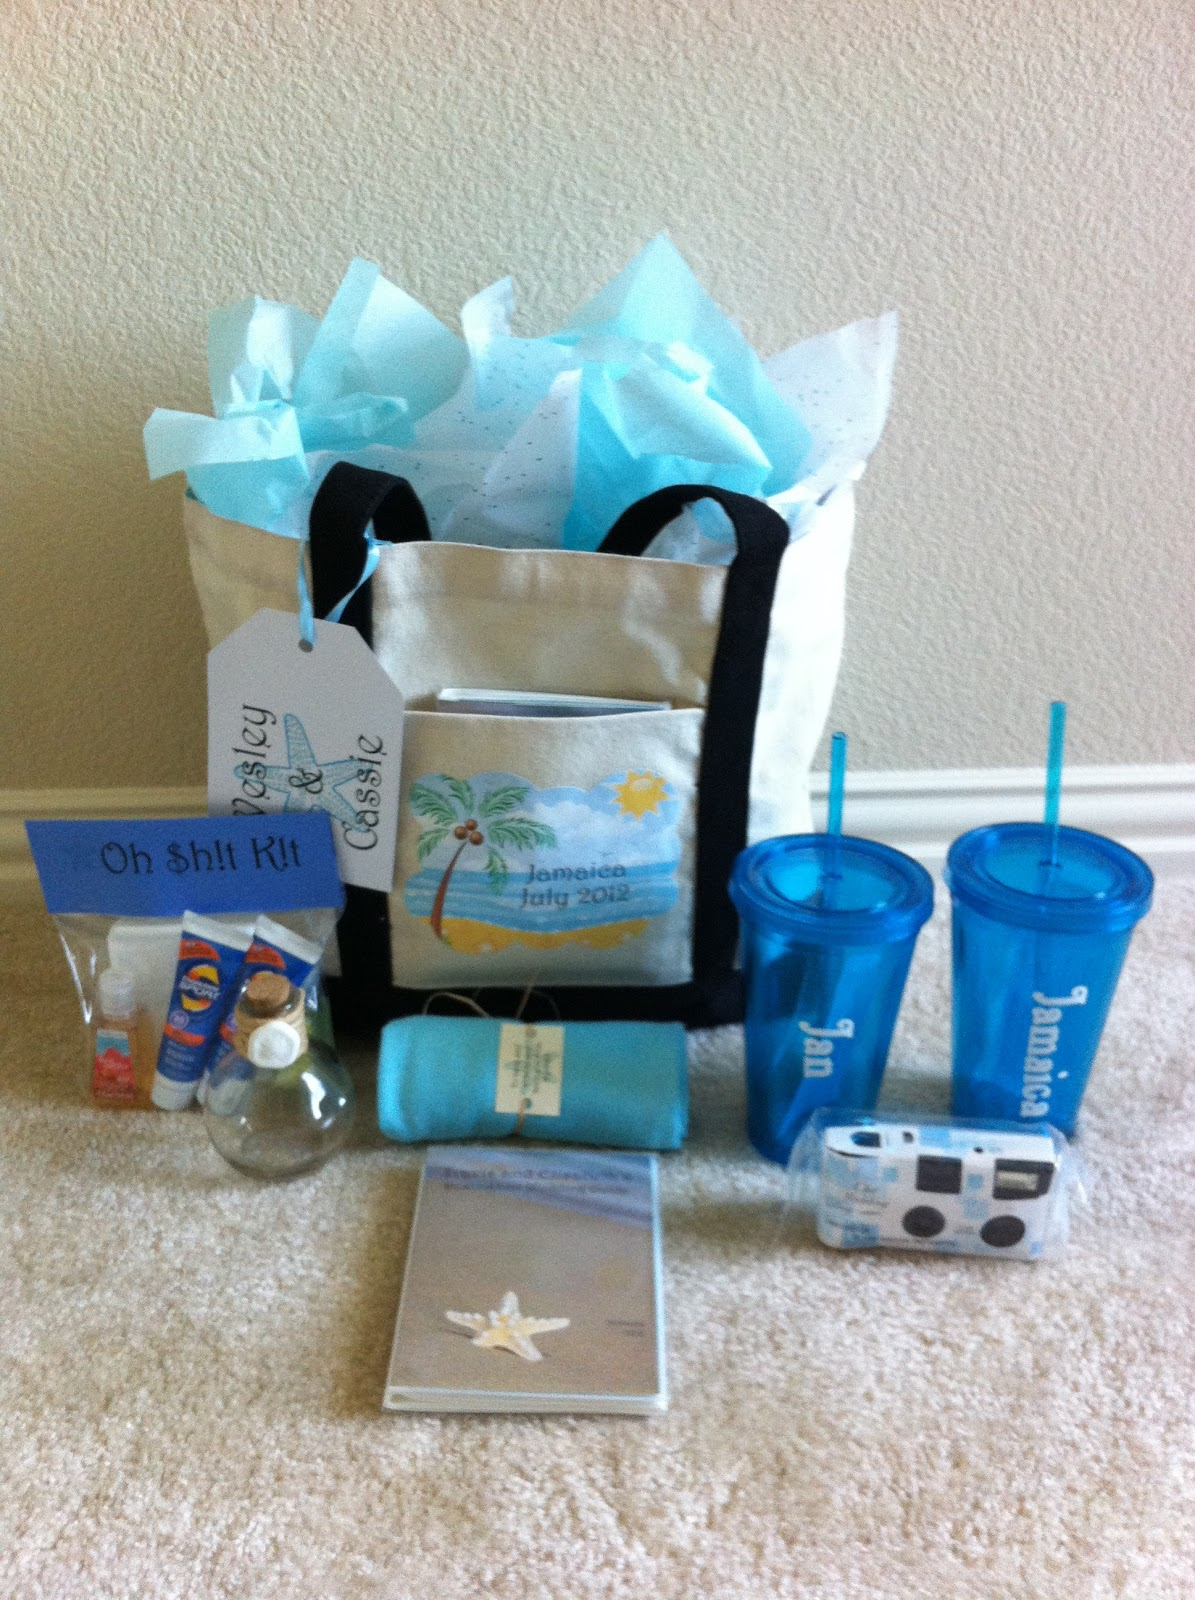 Wedding Goodie Bags Ideas : Here are the bags ready to go to all of my guests in Jamaica! I didnt ...